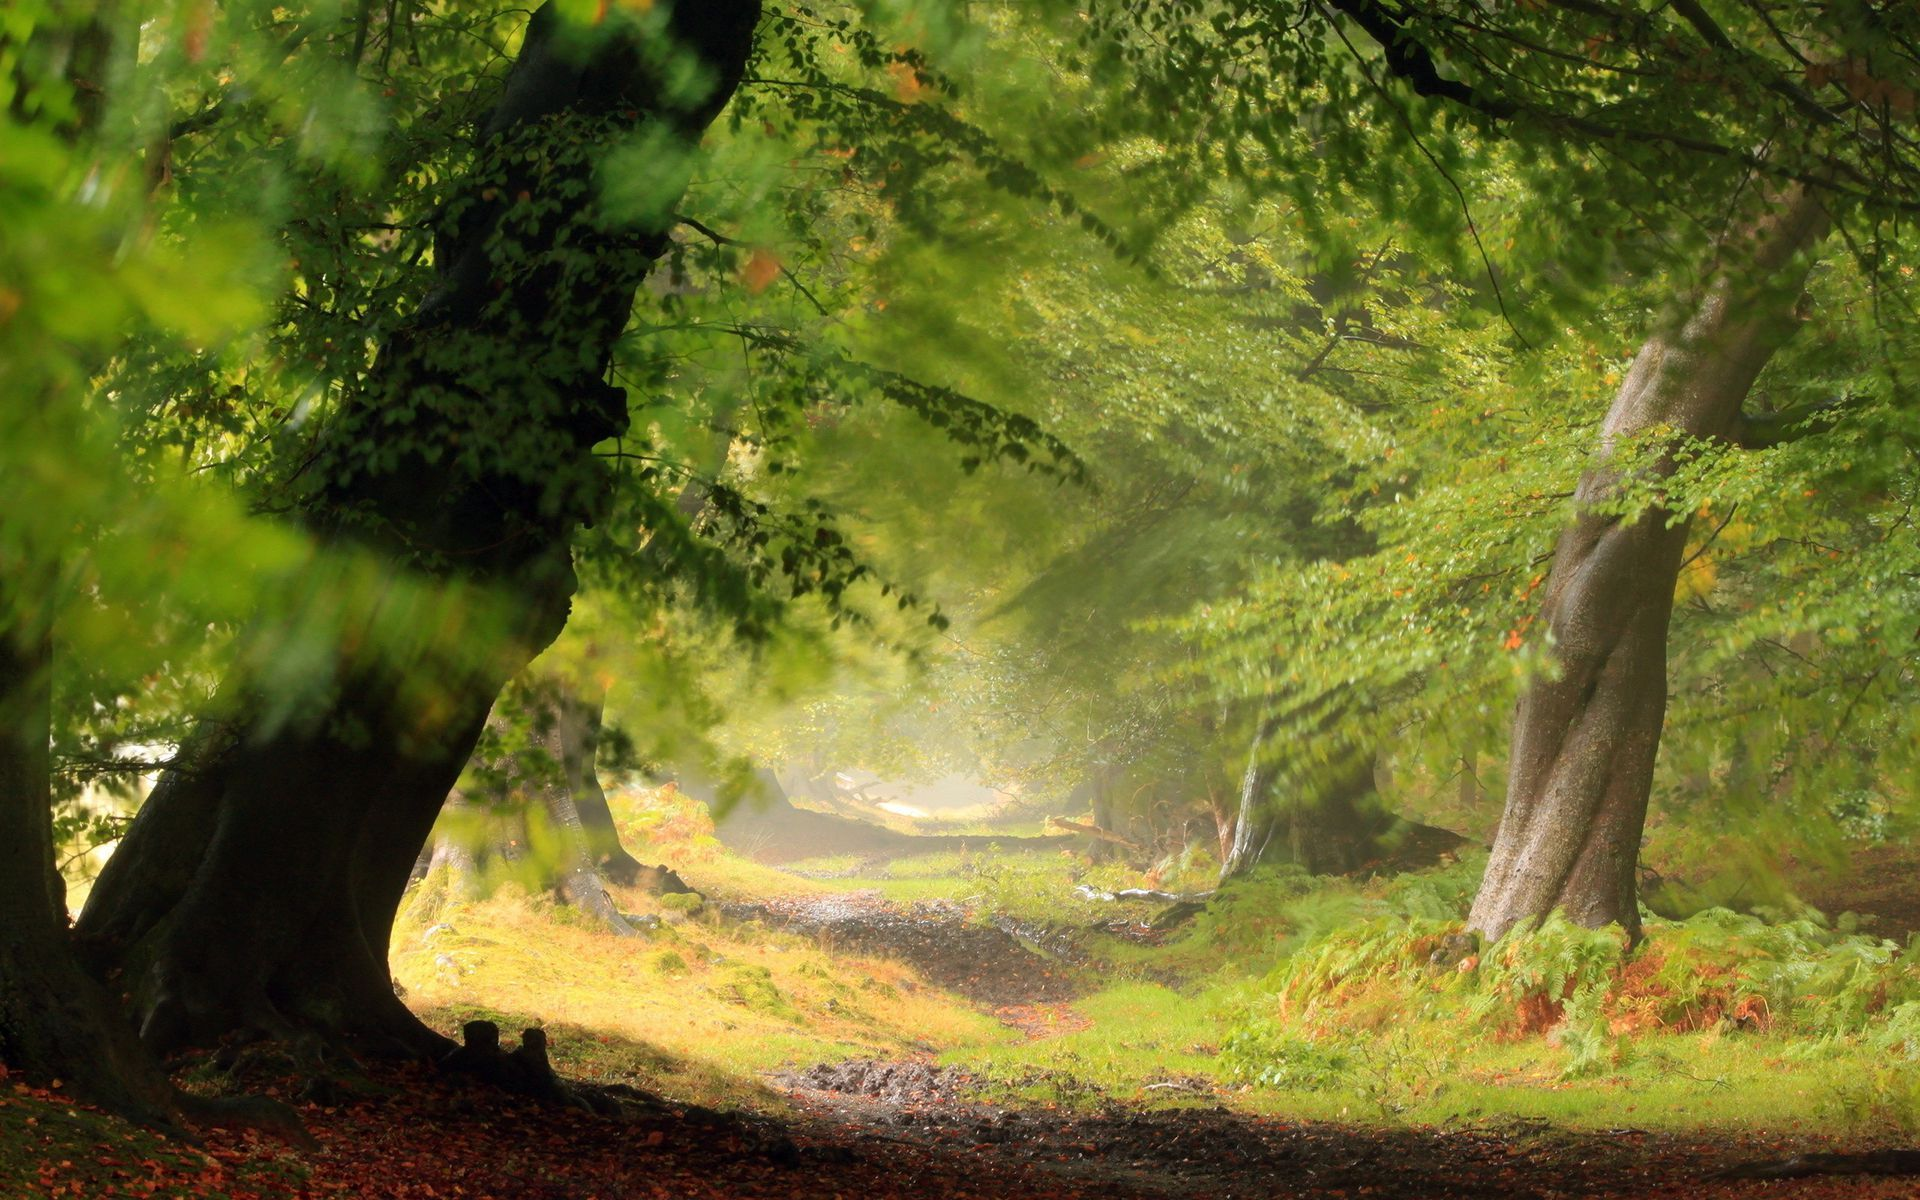 Download Wallpaper High Resolution Forest - 5c241b87496e008593bc4a575190f16e  You Should Have_20440.jpg